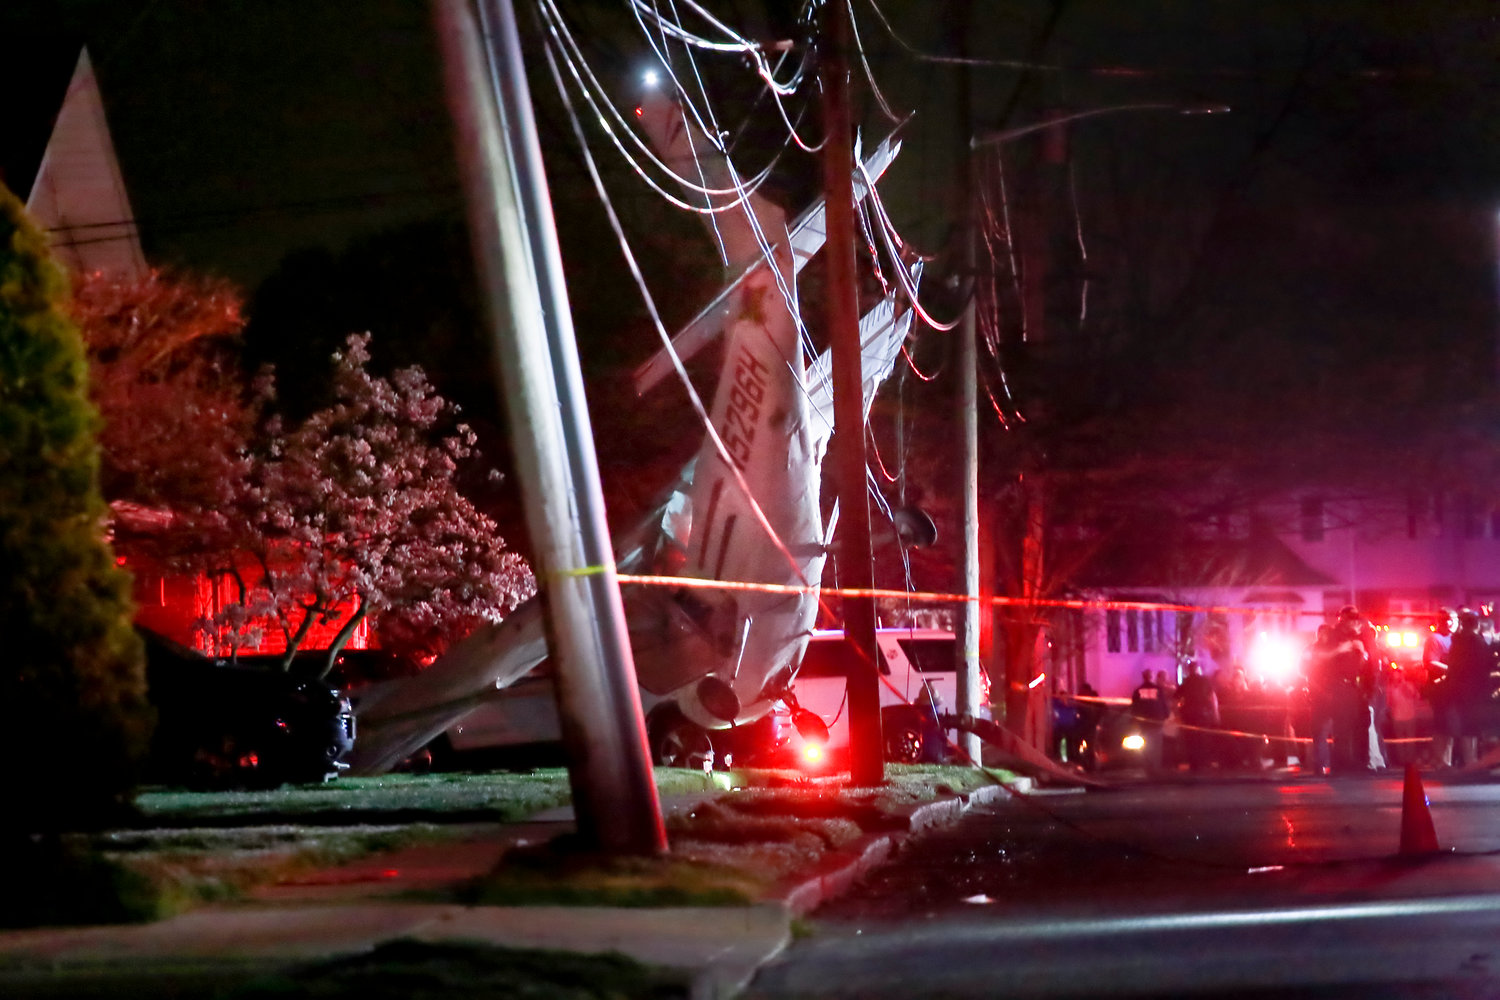 A single-engine prop plane was suspended a foot off the ground by power lines it crashed into in front of a Clarendon Drive home on Sunday. The pilot and passengers were unharmed.